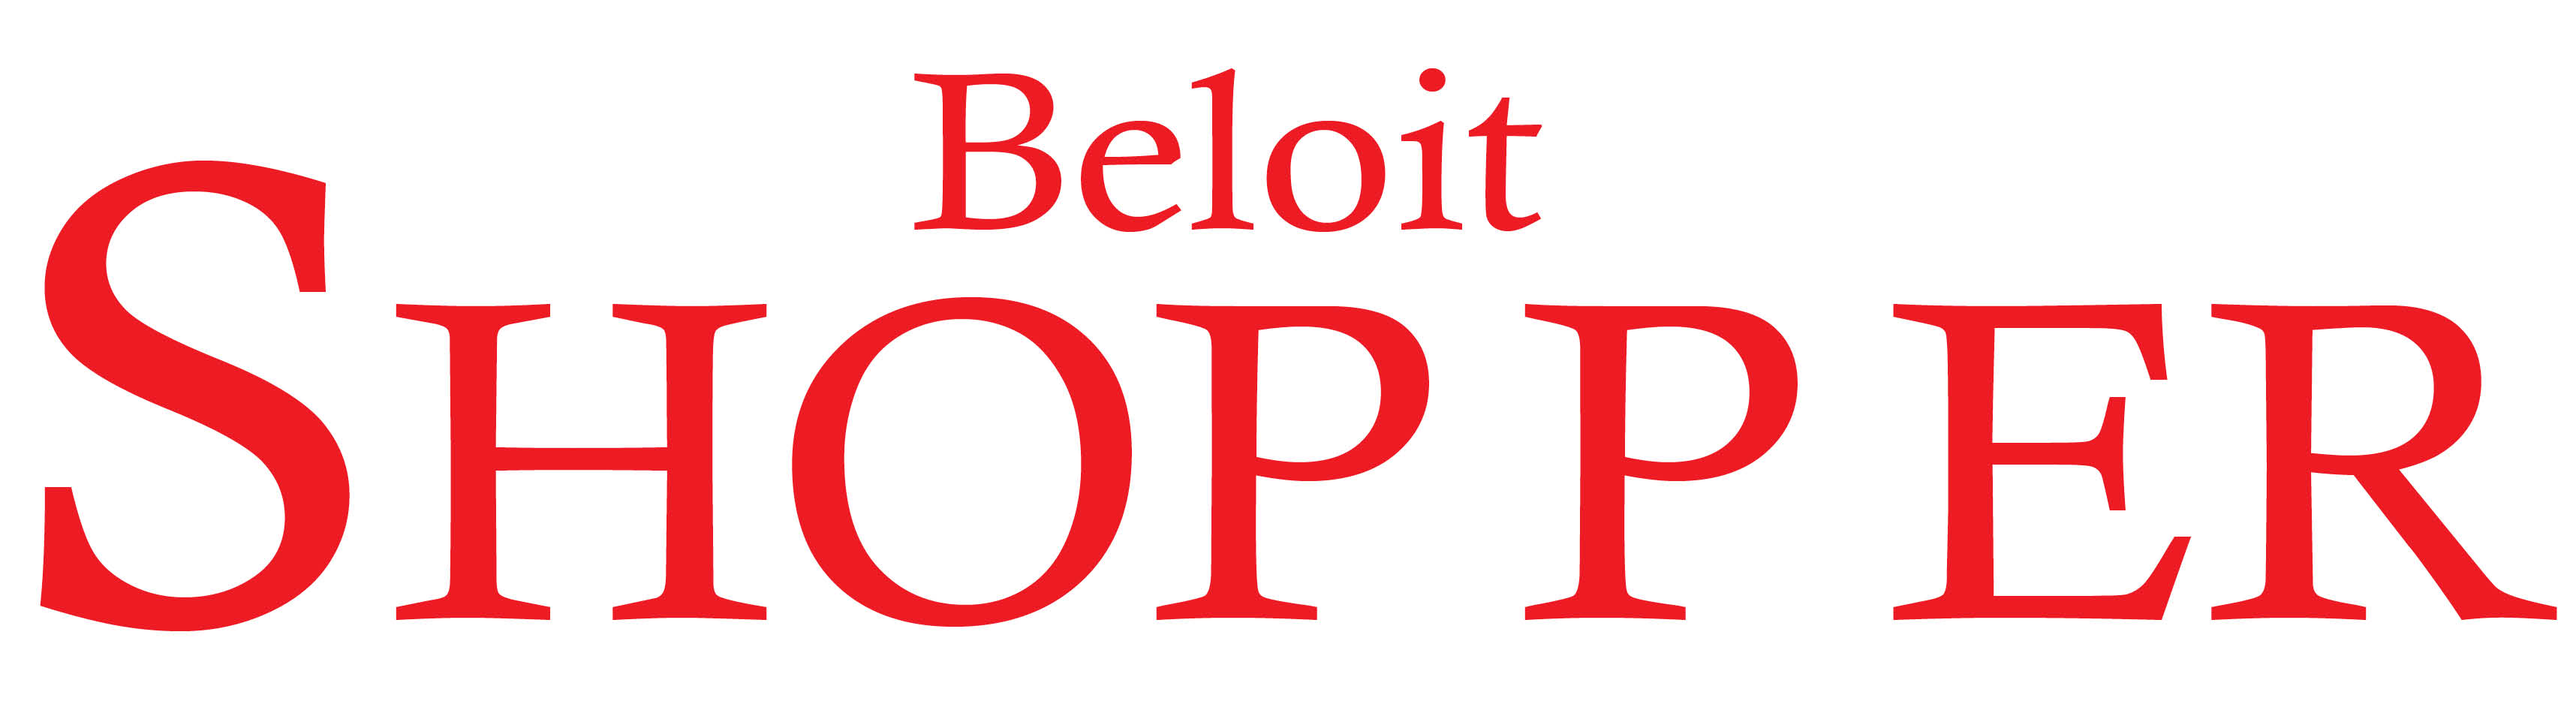 9/6/18 Beloit Shopper